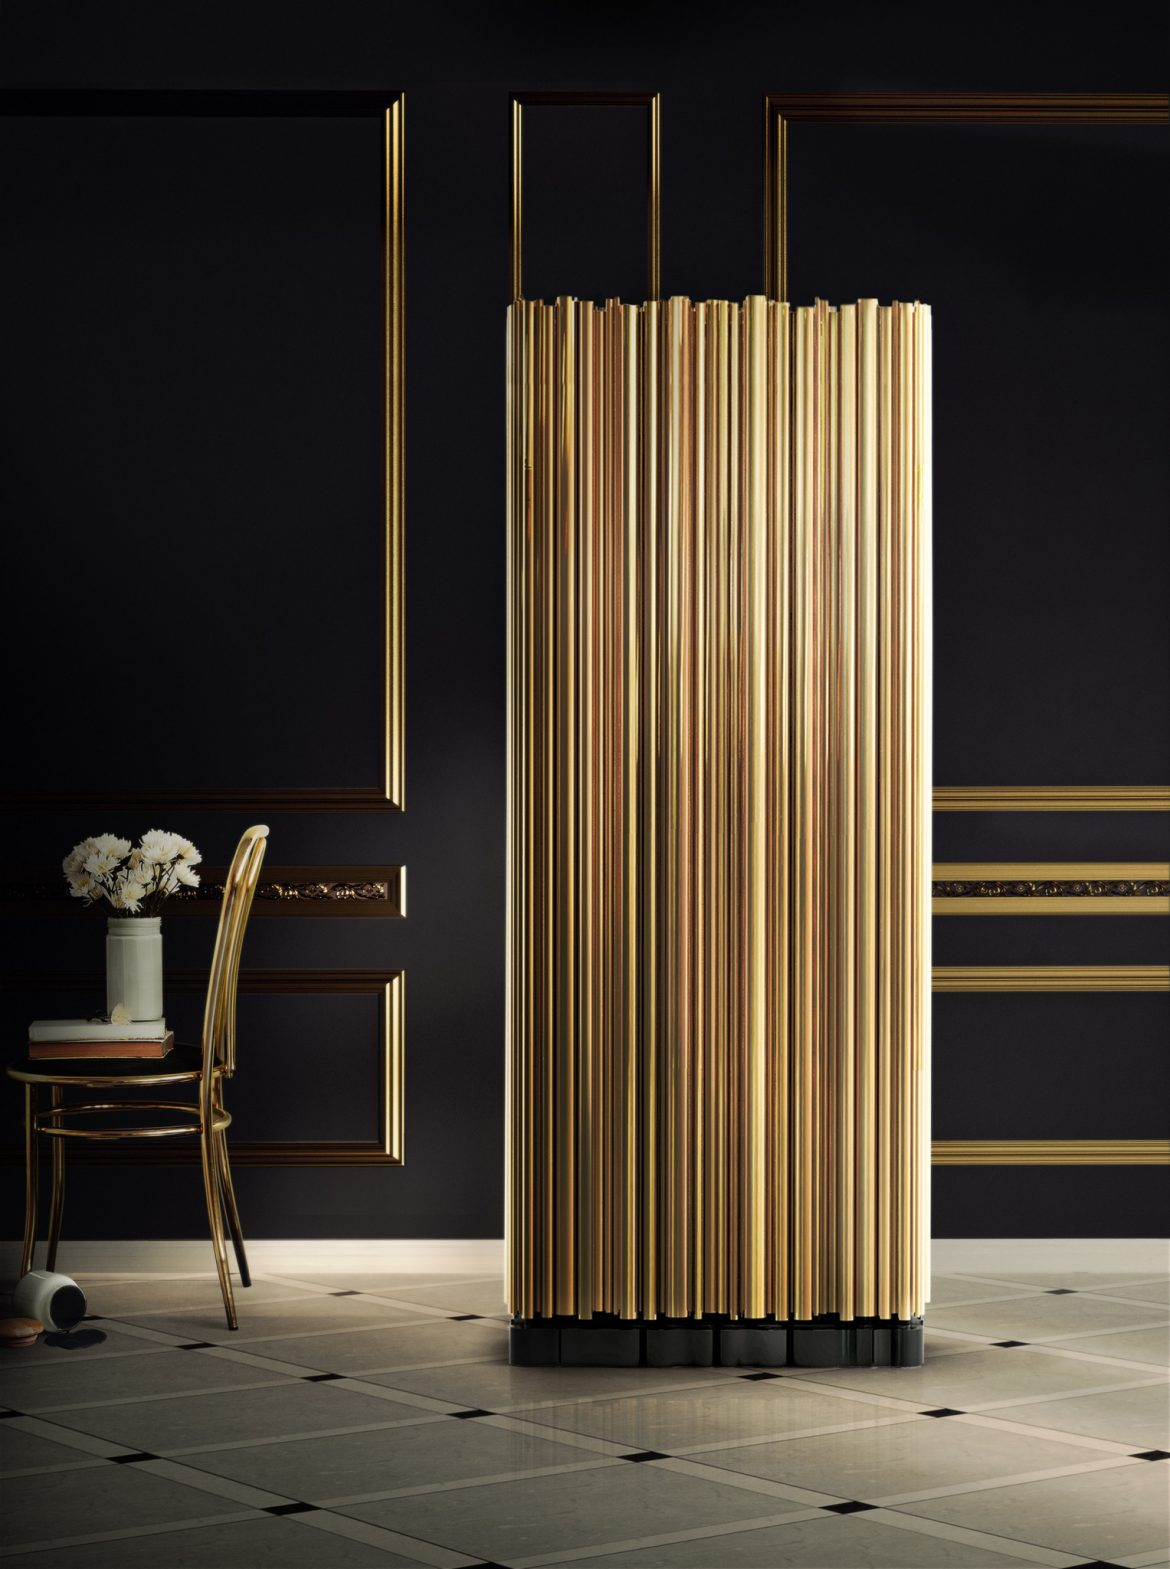 5-pieces-that-you-really-have-to-see-in-hpmkt-2015 (10) 5 Pieces that you really have to see in HPMKT 2015 5 Pieces that you really have to see in HPMKT 2015 5 pieces that you really have to see in hpmkt 2015 10